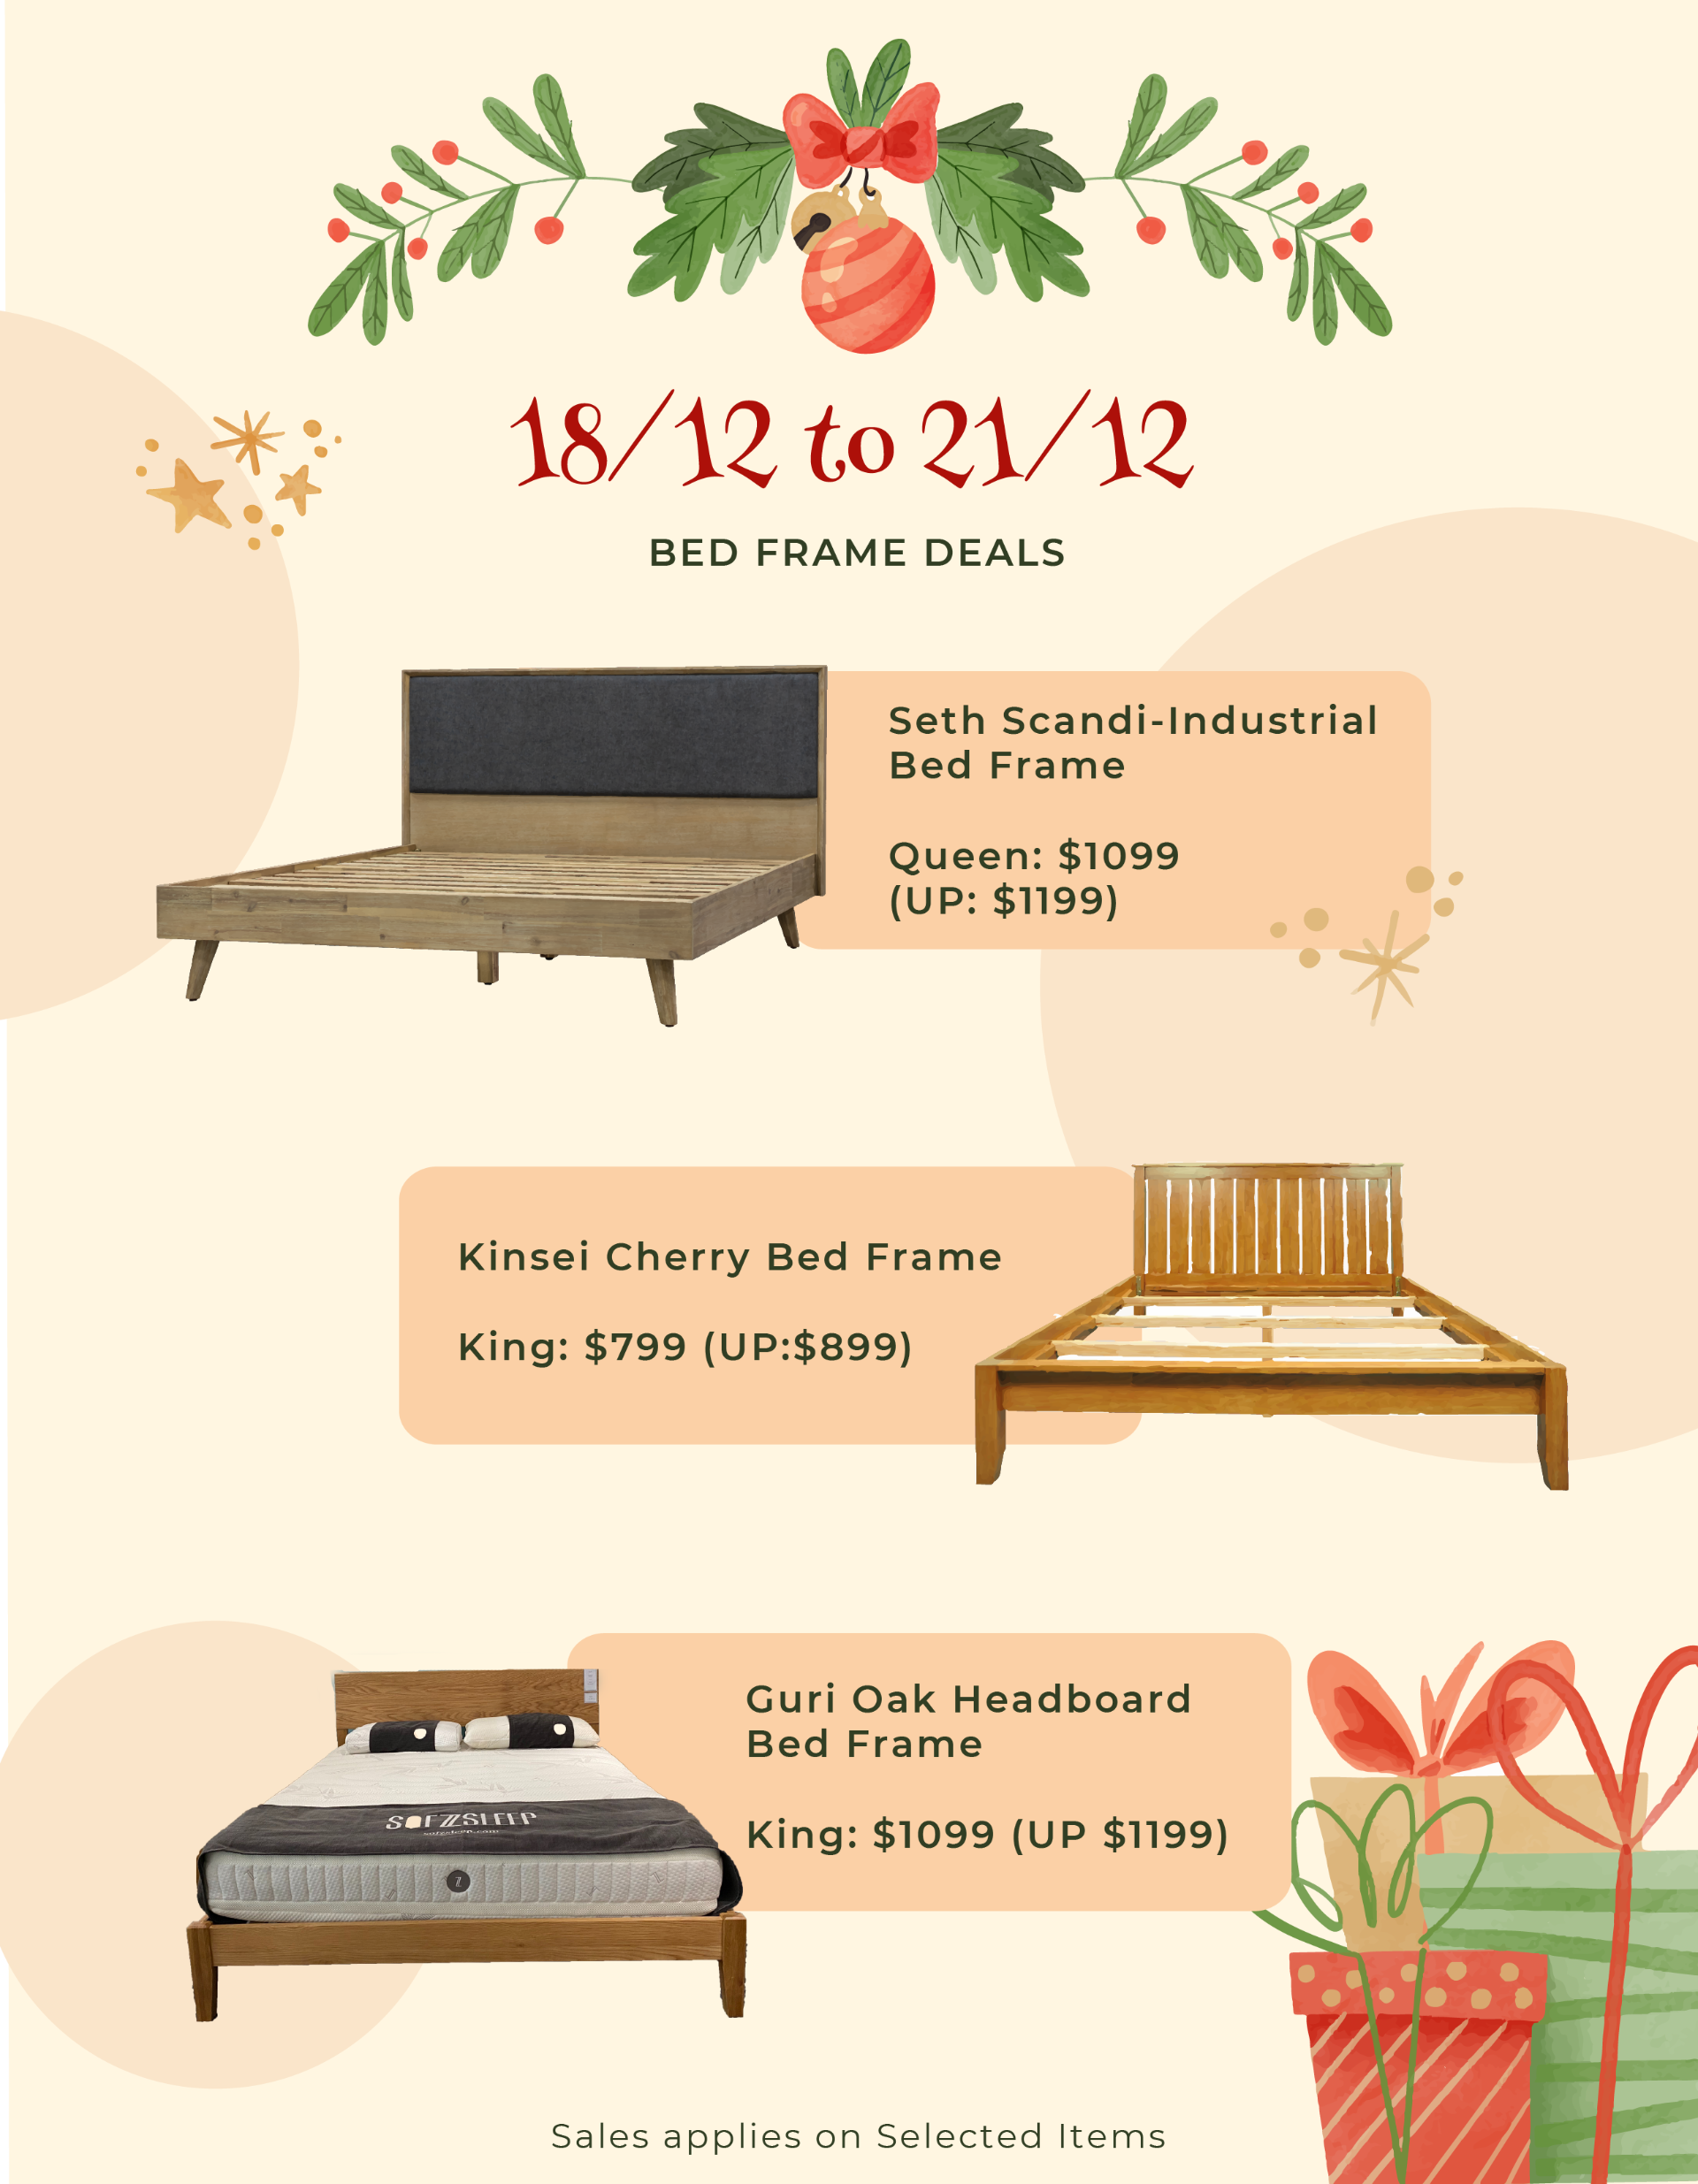 X'mas Bed Frame Sales